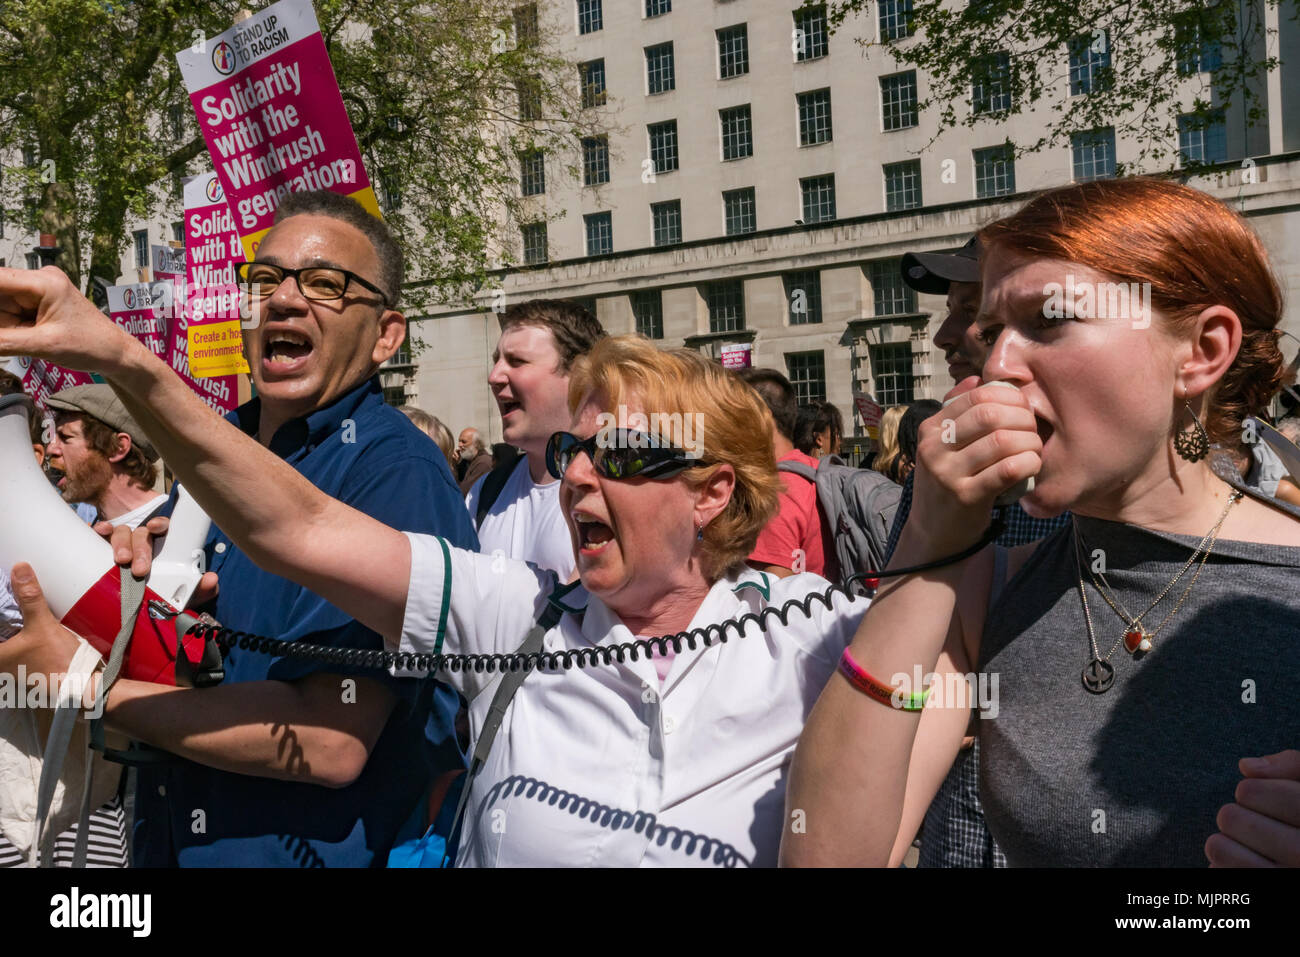 London, UK. 5th May 2018. People shout for women to have the choice to have an abortion at the March for Life UK, a largely Catholic event calling for an end to abortions as it marches down Whitehall to a rally in Parliament Square. Opposed to abortion they aim to raise awareness of the hurt and damage that abortion causes and to unite all the pro-life groups in the UK to help bring to an end what it calls the greatest violation to human rights in history. Credit: Peter Marshall/Alamy Live News - Stock Image